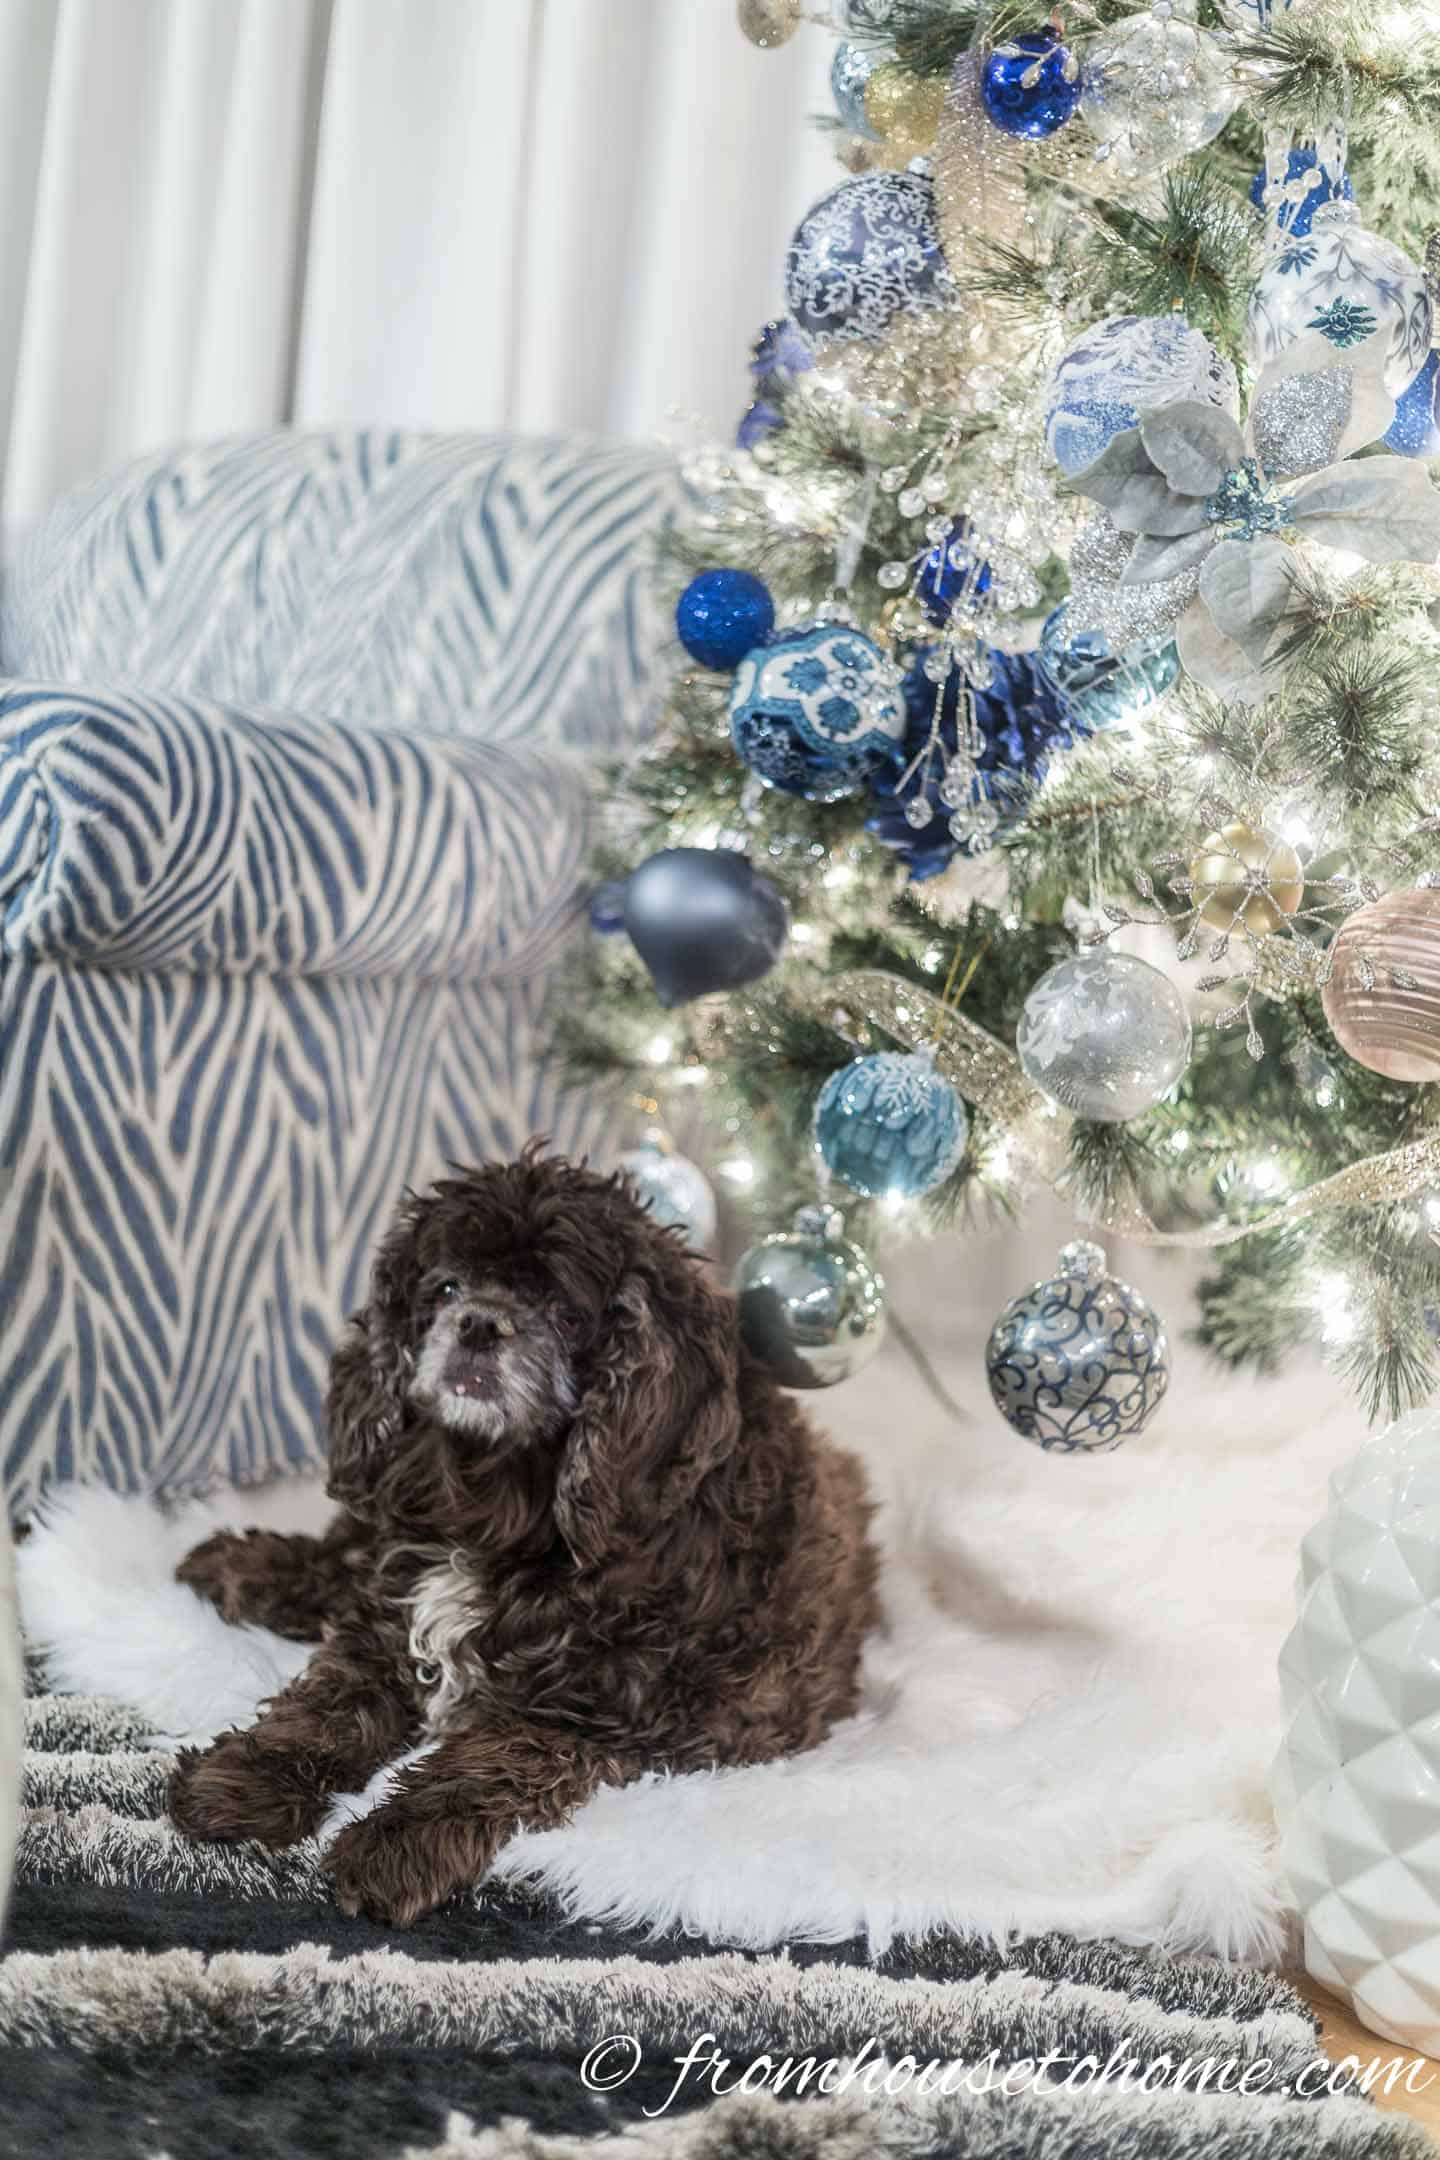 A dog lying on a faux fur tree skirt under the blue and white Christmas tree